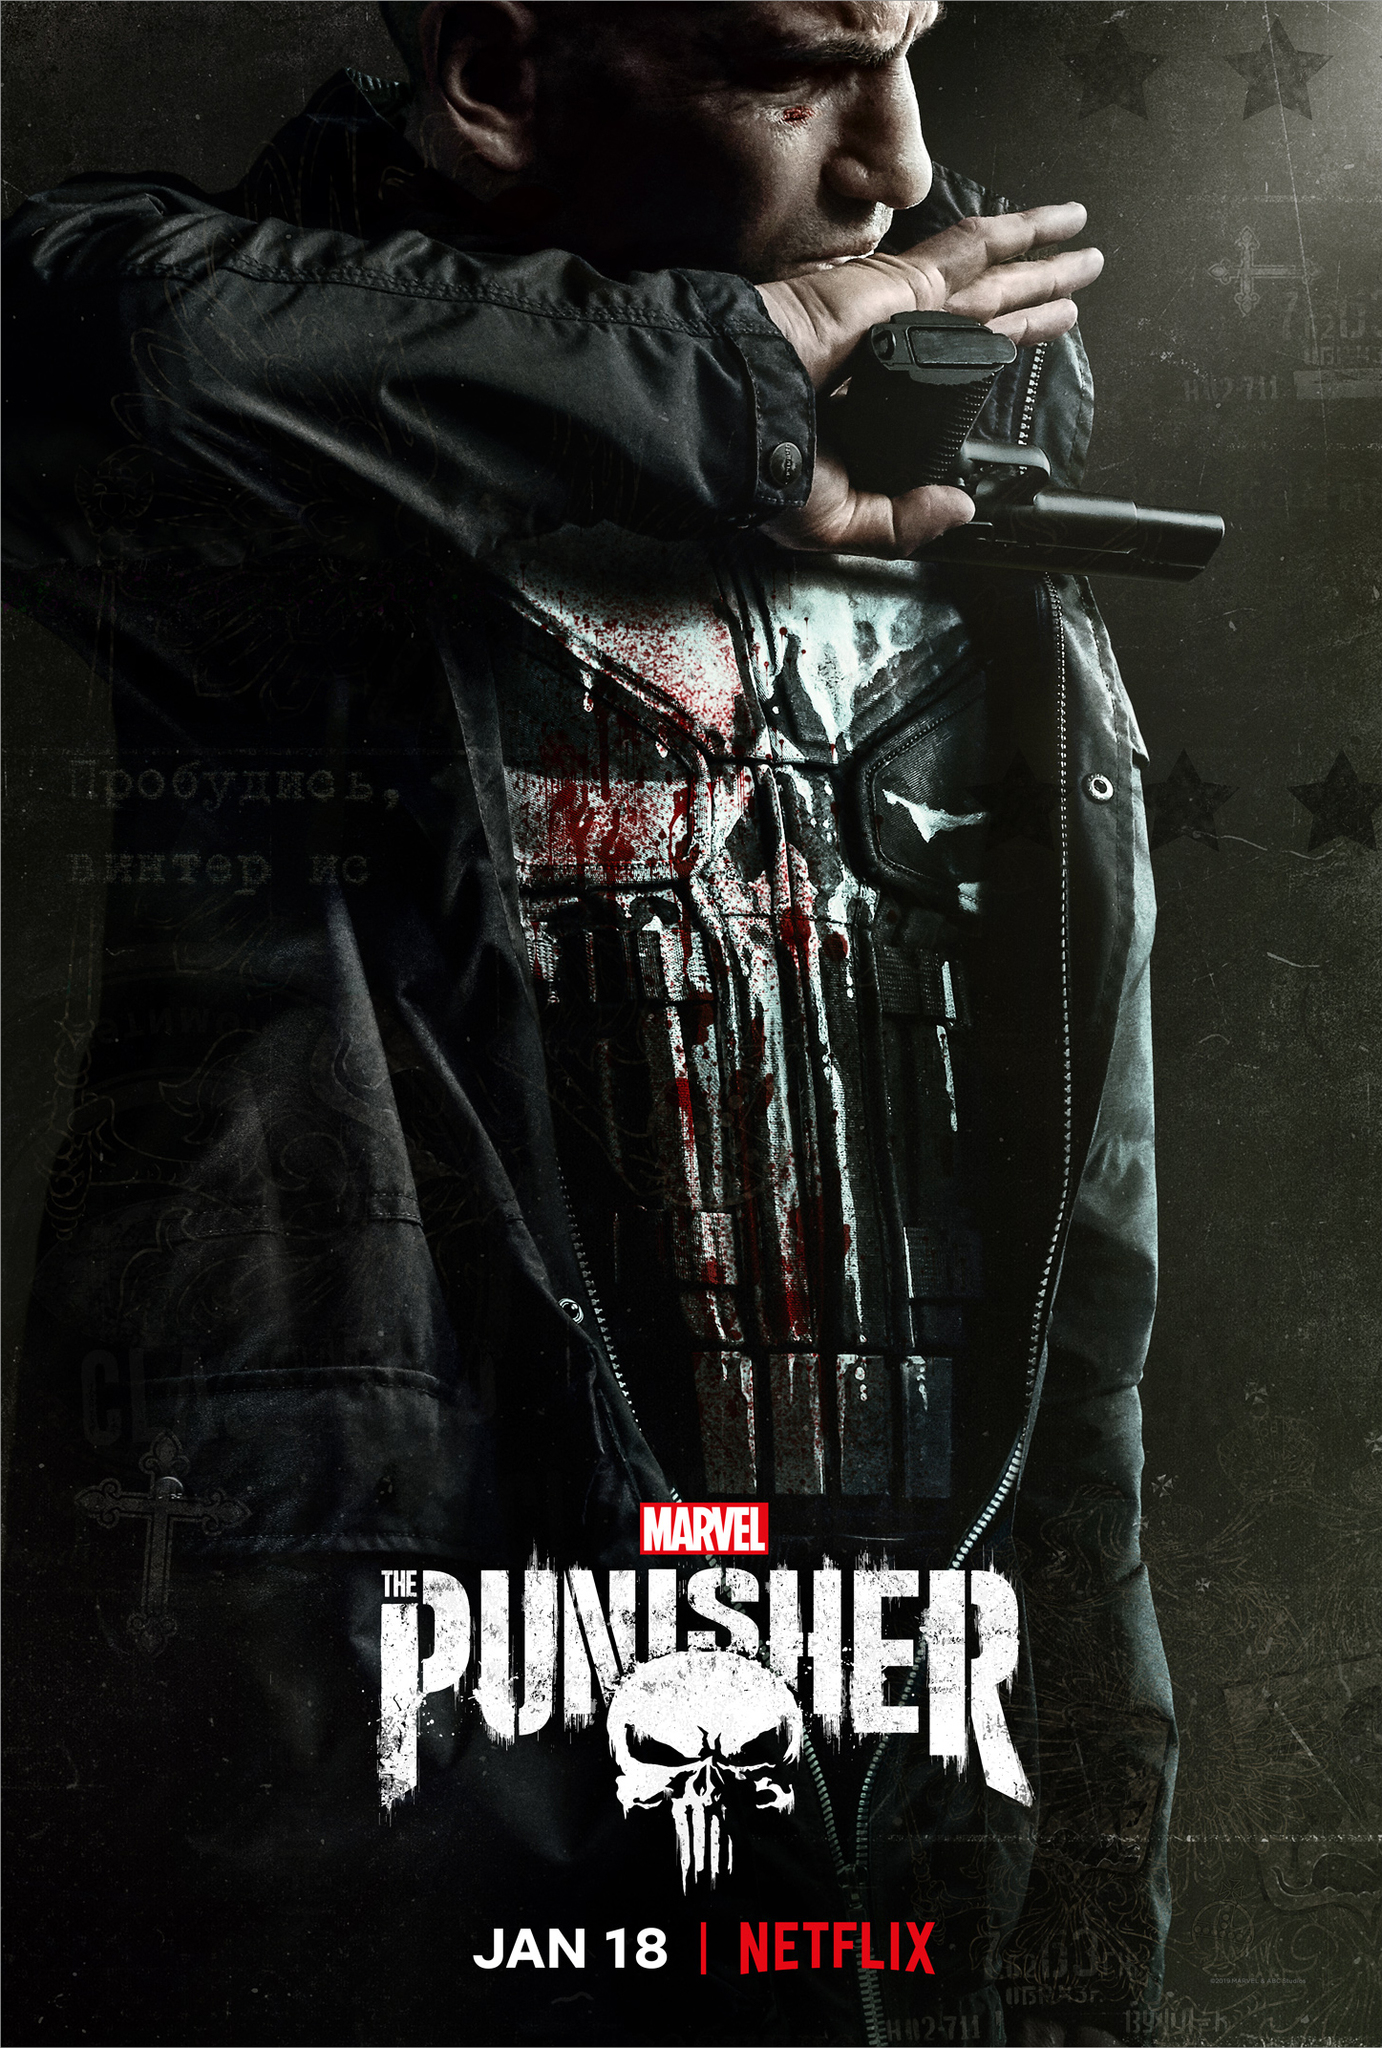 The Punisher Series Wallpaper Hd